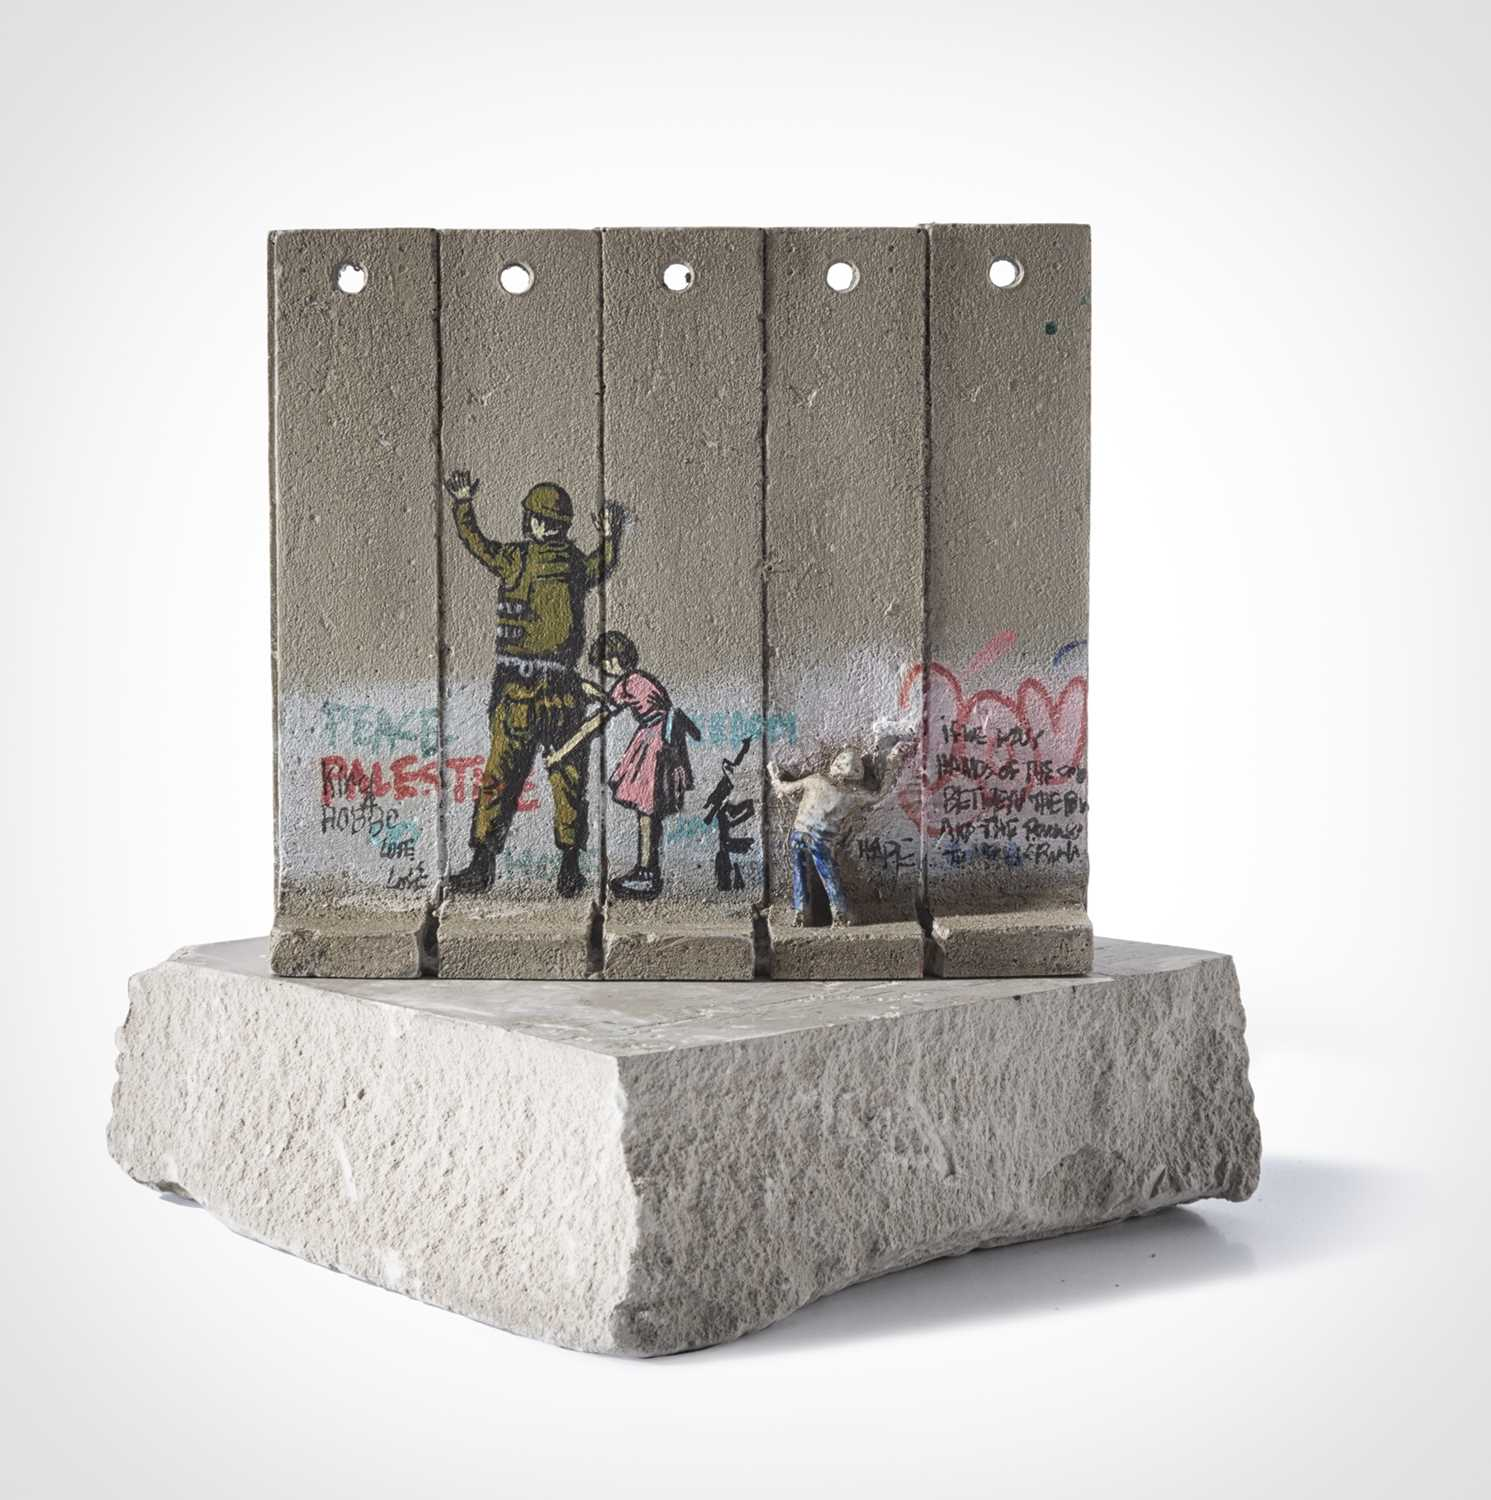 Lot 55-Banksy (British 1974 -), Walled Off Hotel - Five Part Souvenir Wall Section (Stop And Search)